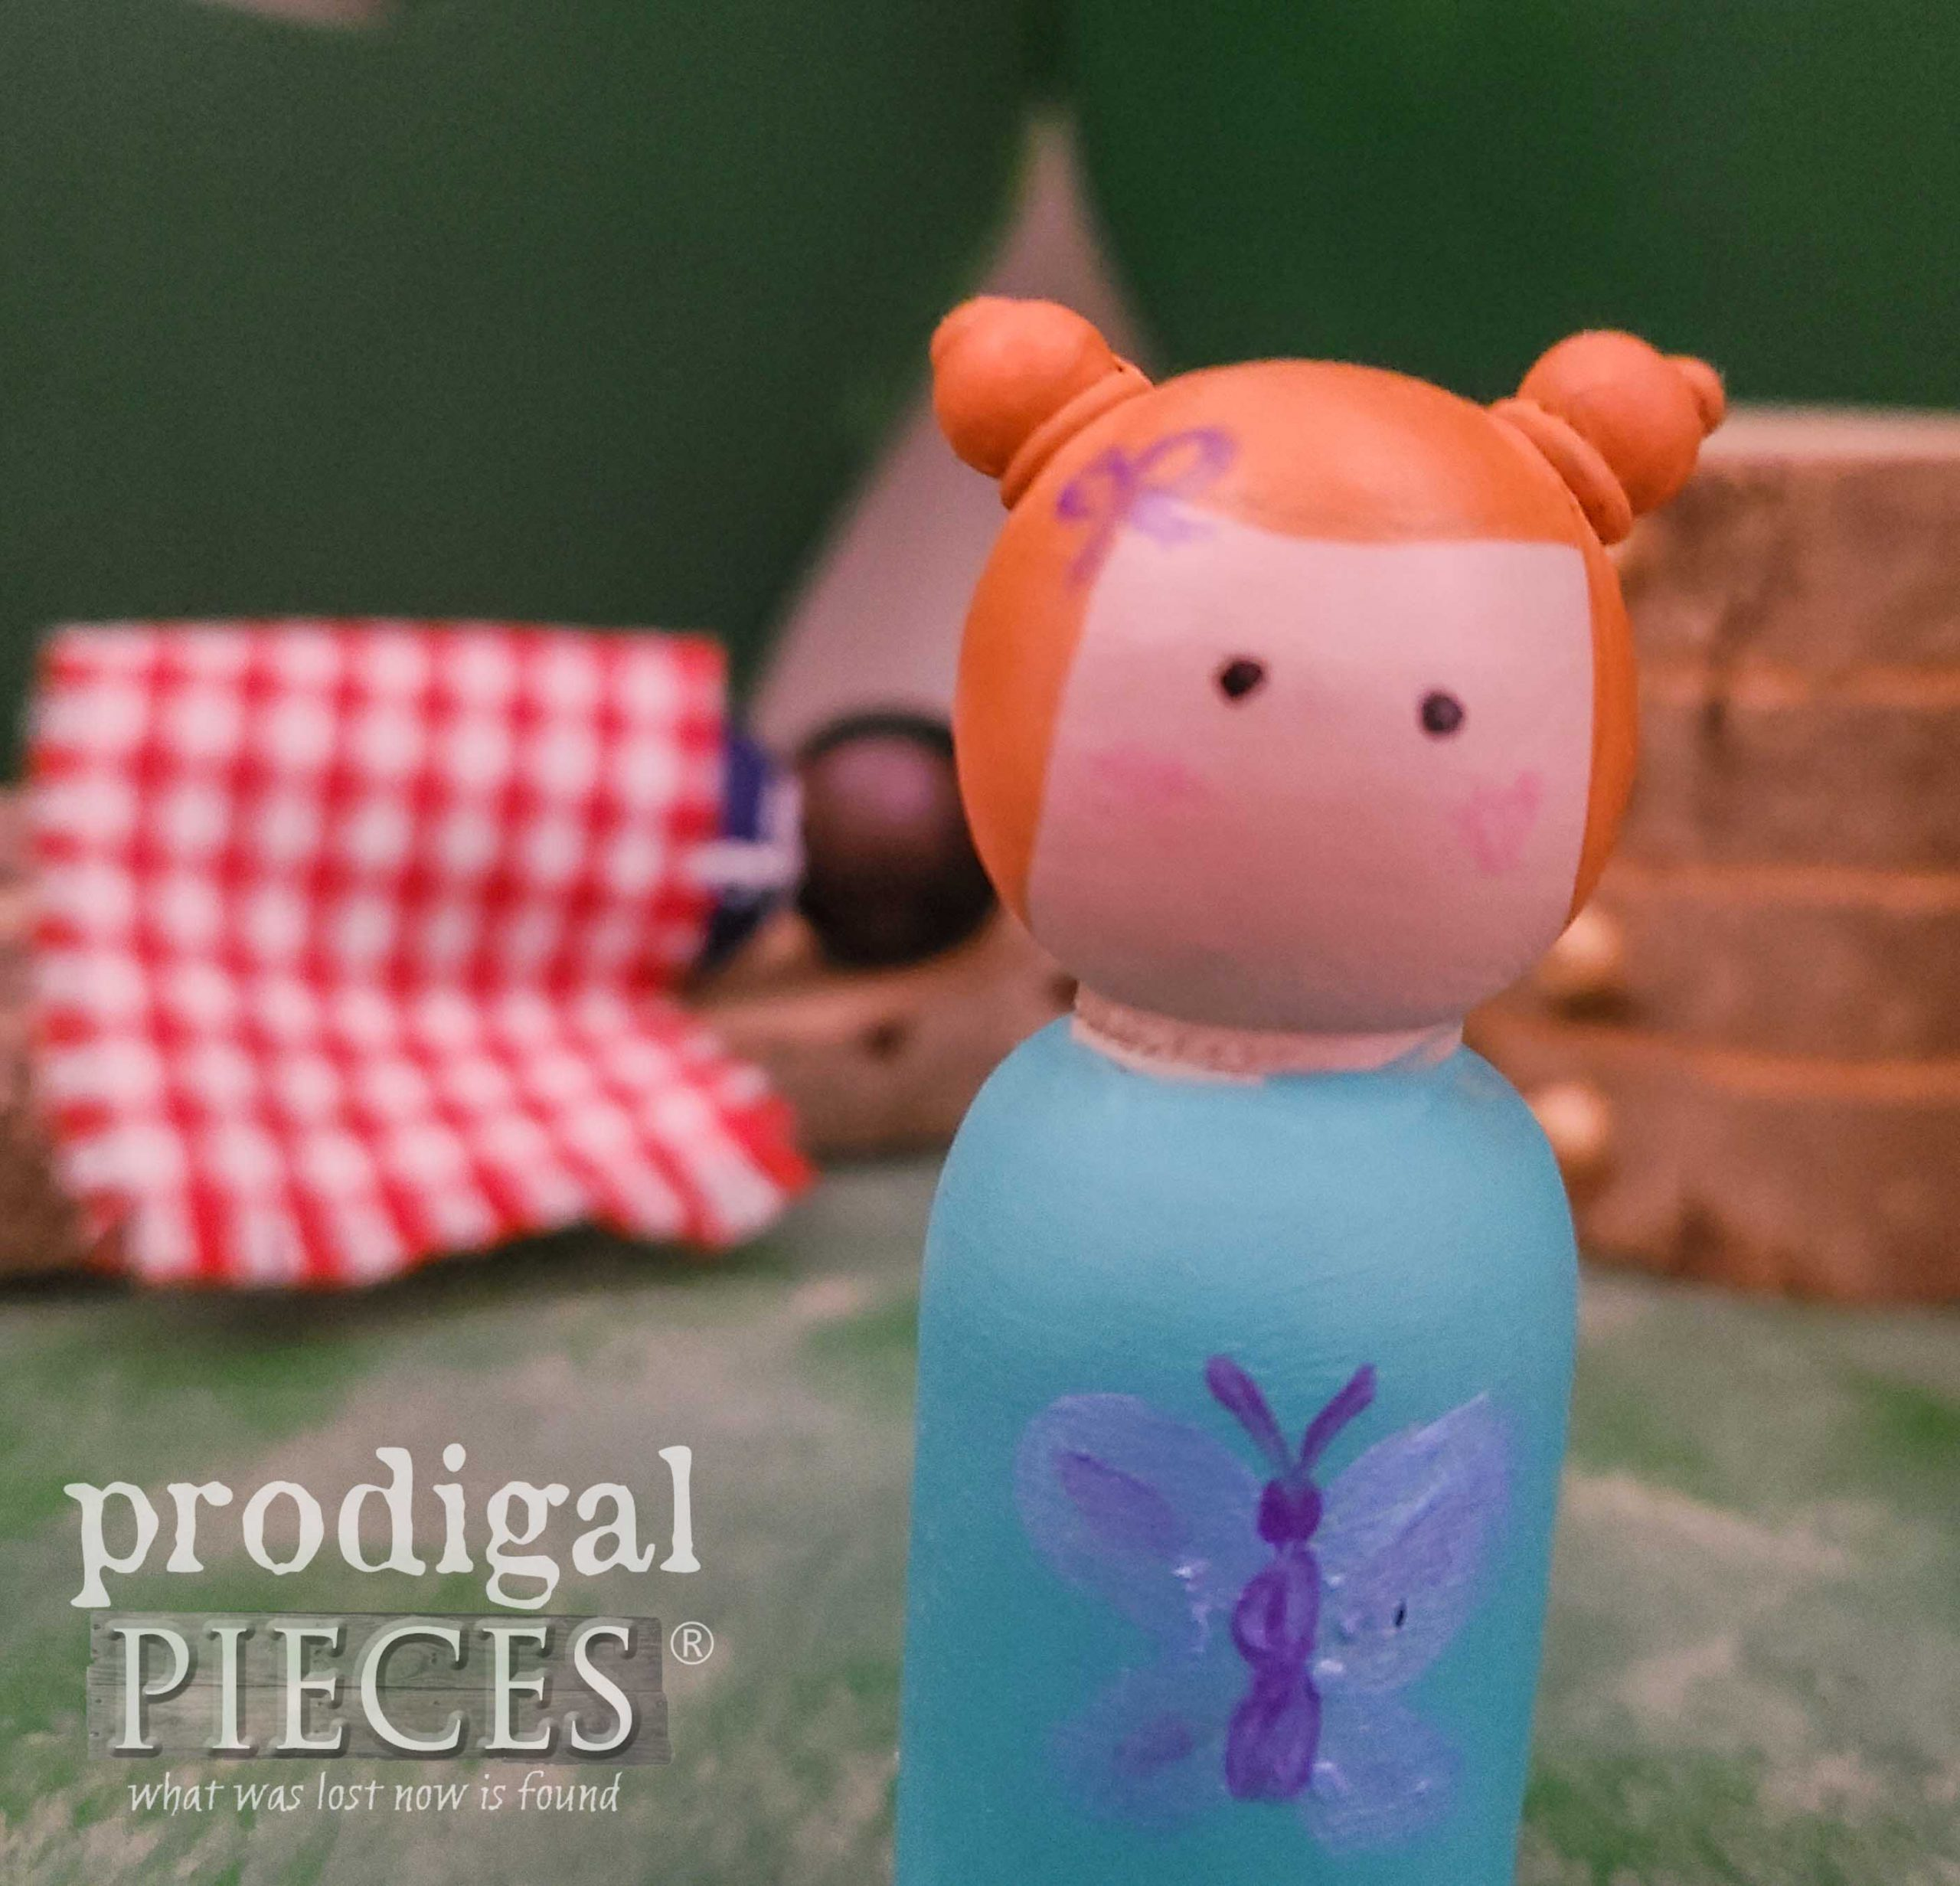 Girl Peg Doll with Buns by Larissa of Prodigal Pieces | prodigalpieces.com #prodigalpieces #handmade #dolls #play #kids